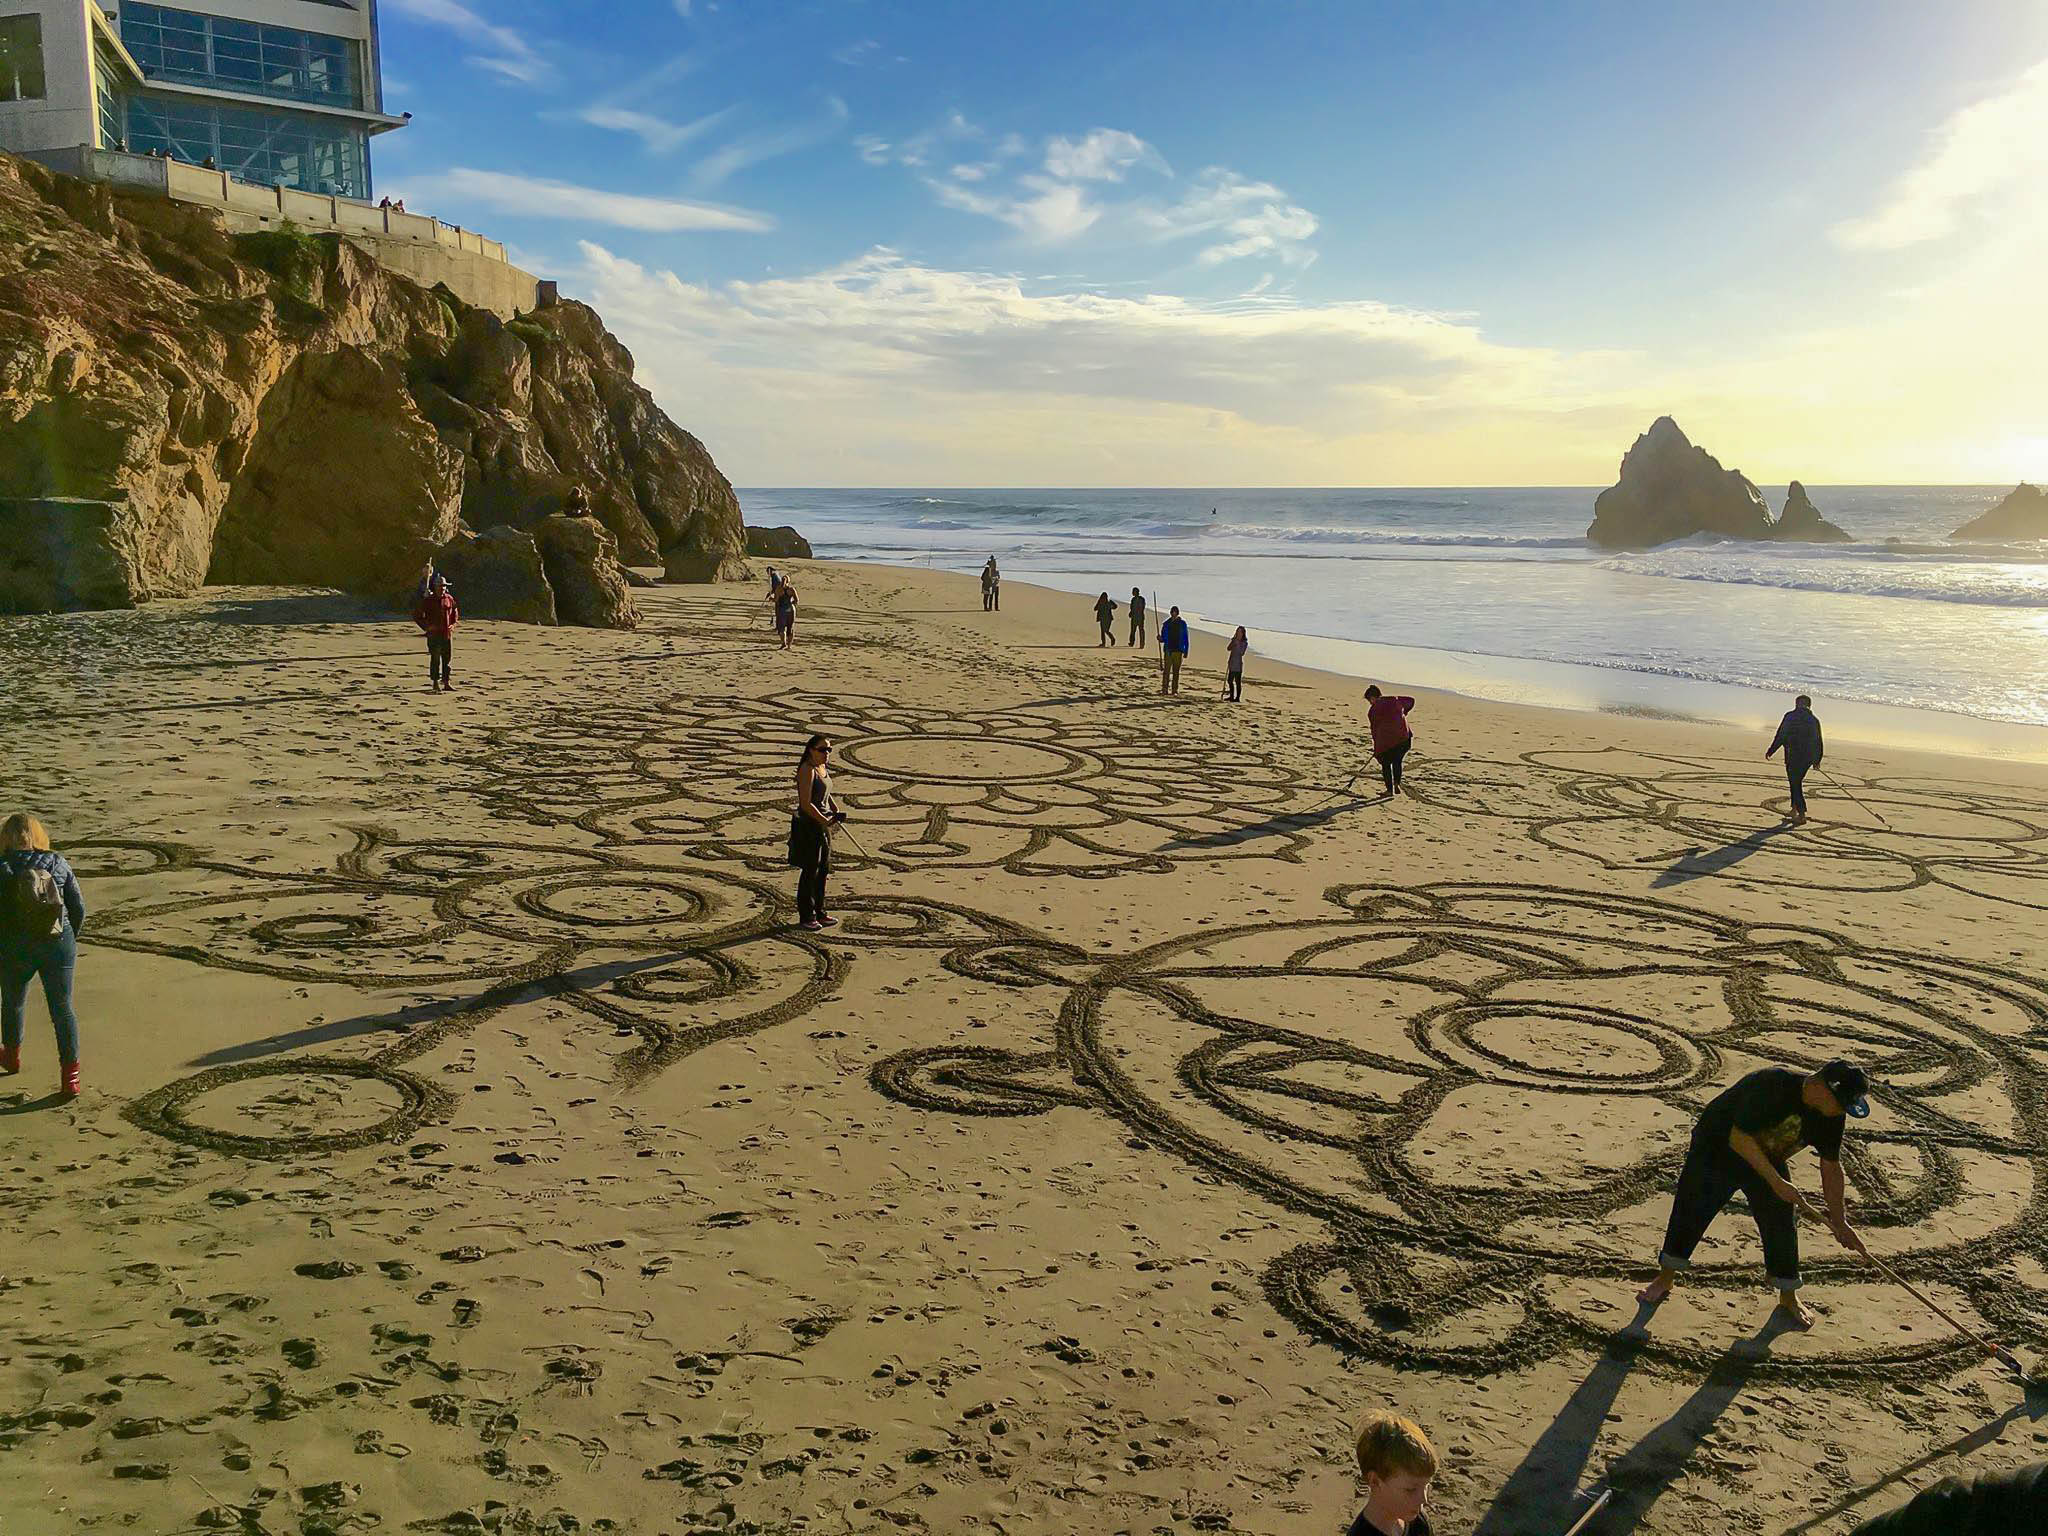 Meditational Beach Artwork